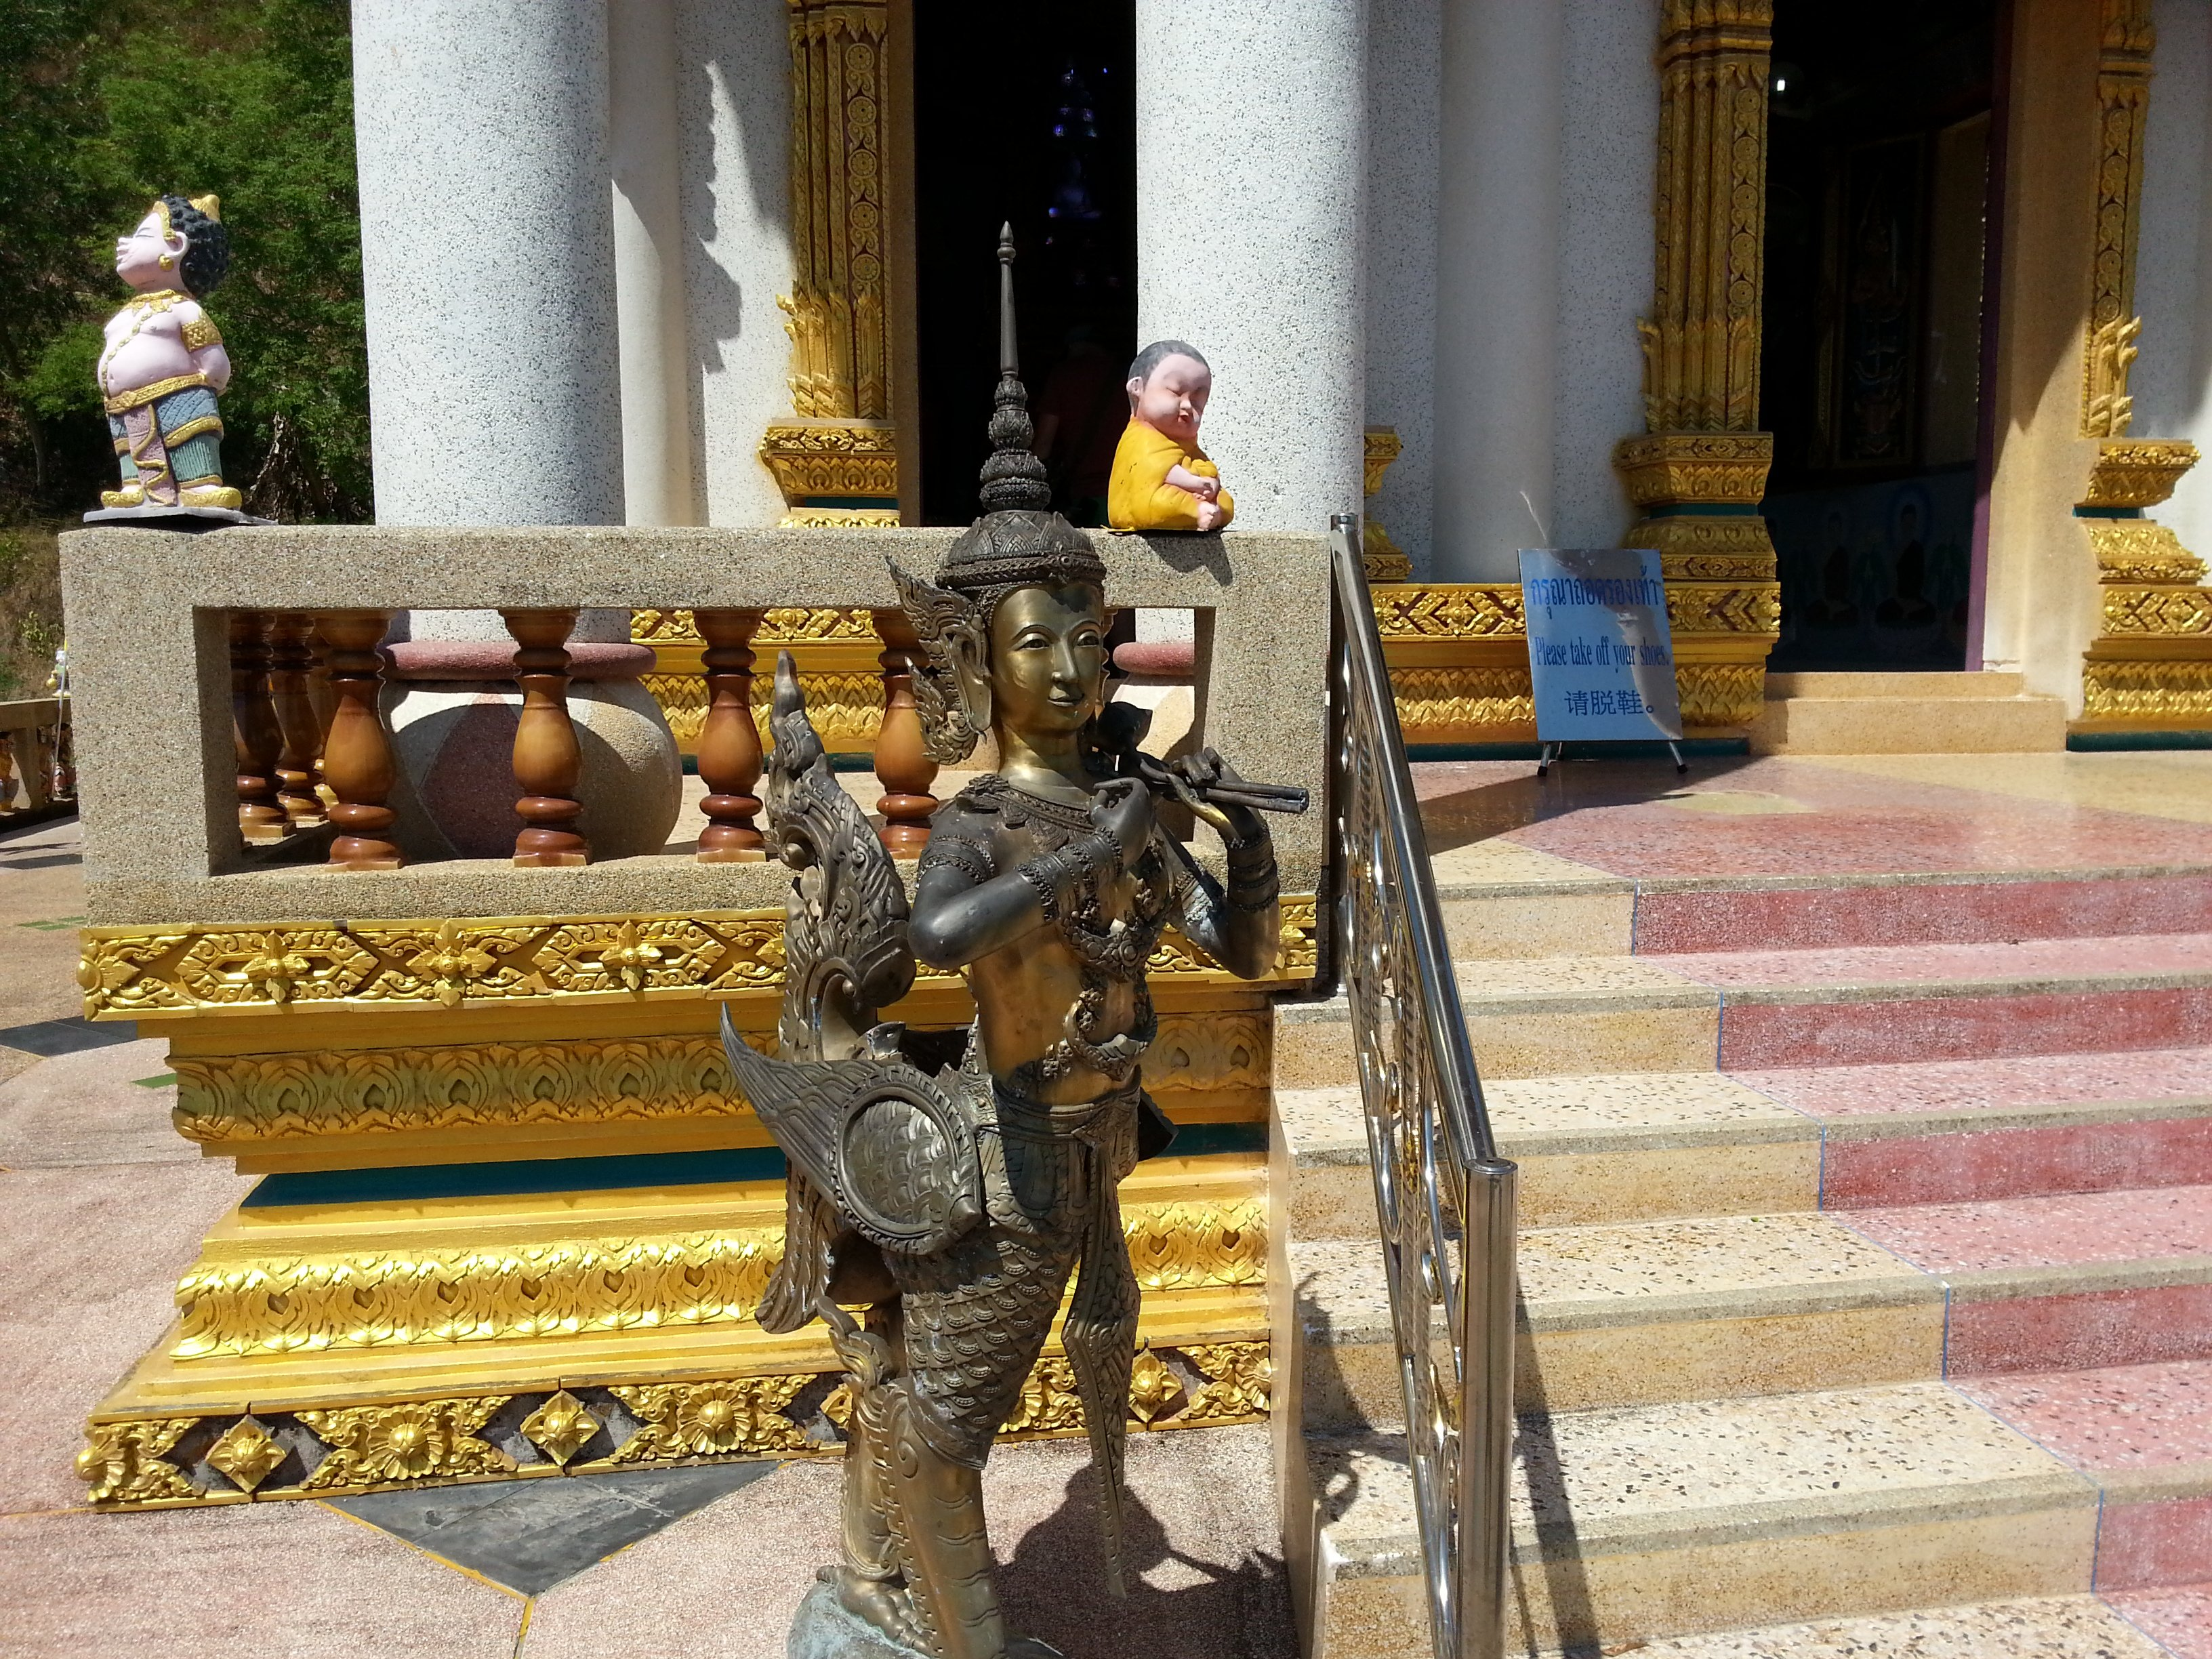 One of the many interesting statues at Wat Khao Rang